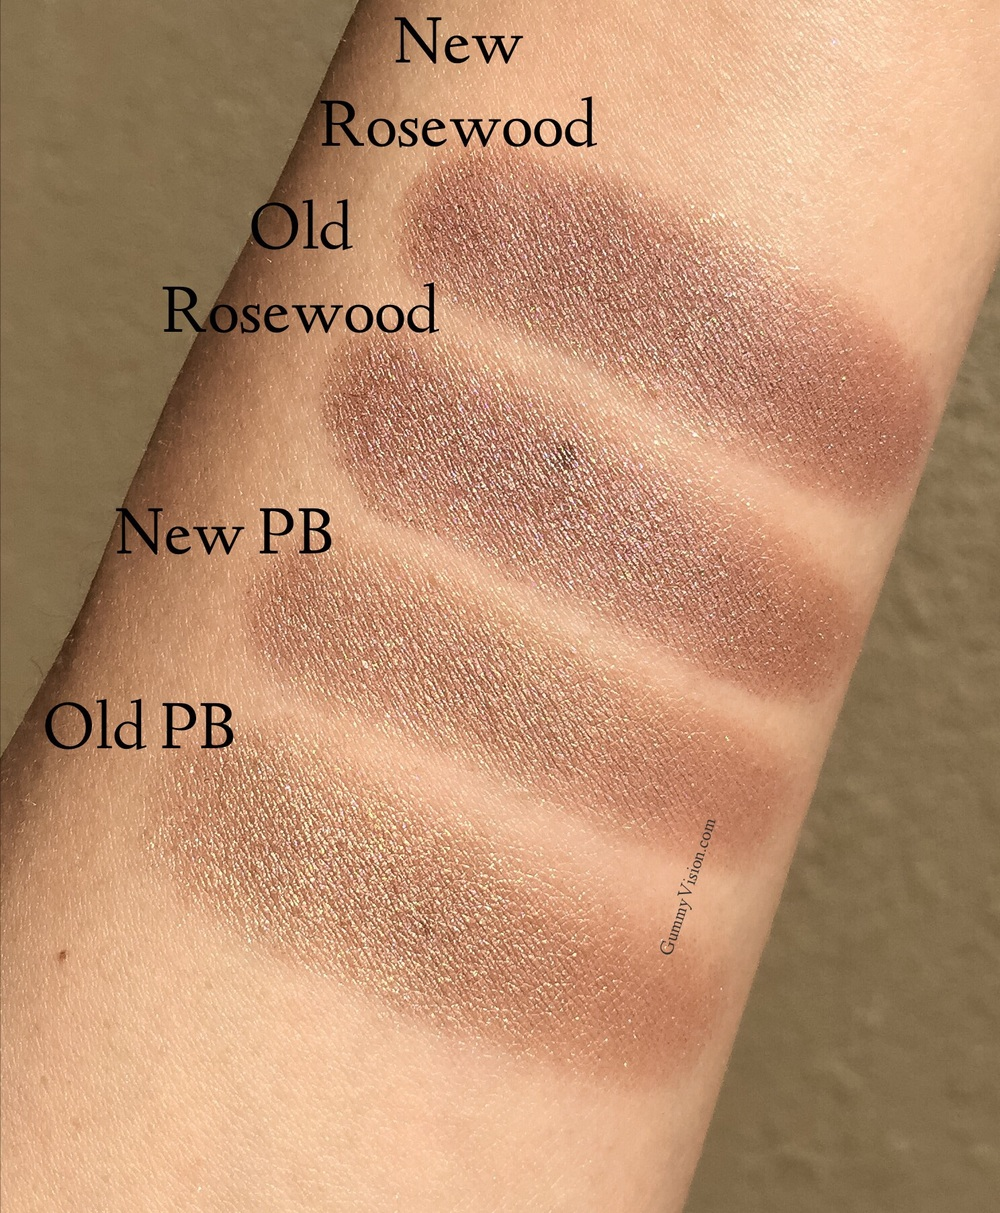 Sunlight. New Burberry Wet and Dry Silk Eyeshadows in Pale Barley and Rosewood vs. the old Pale Barley and Rosewood - gummyvision.com